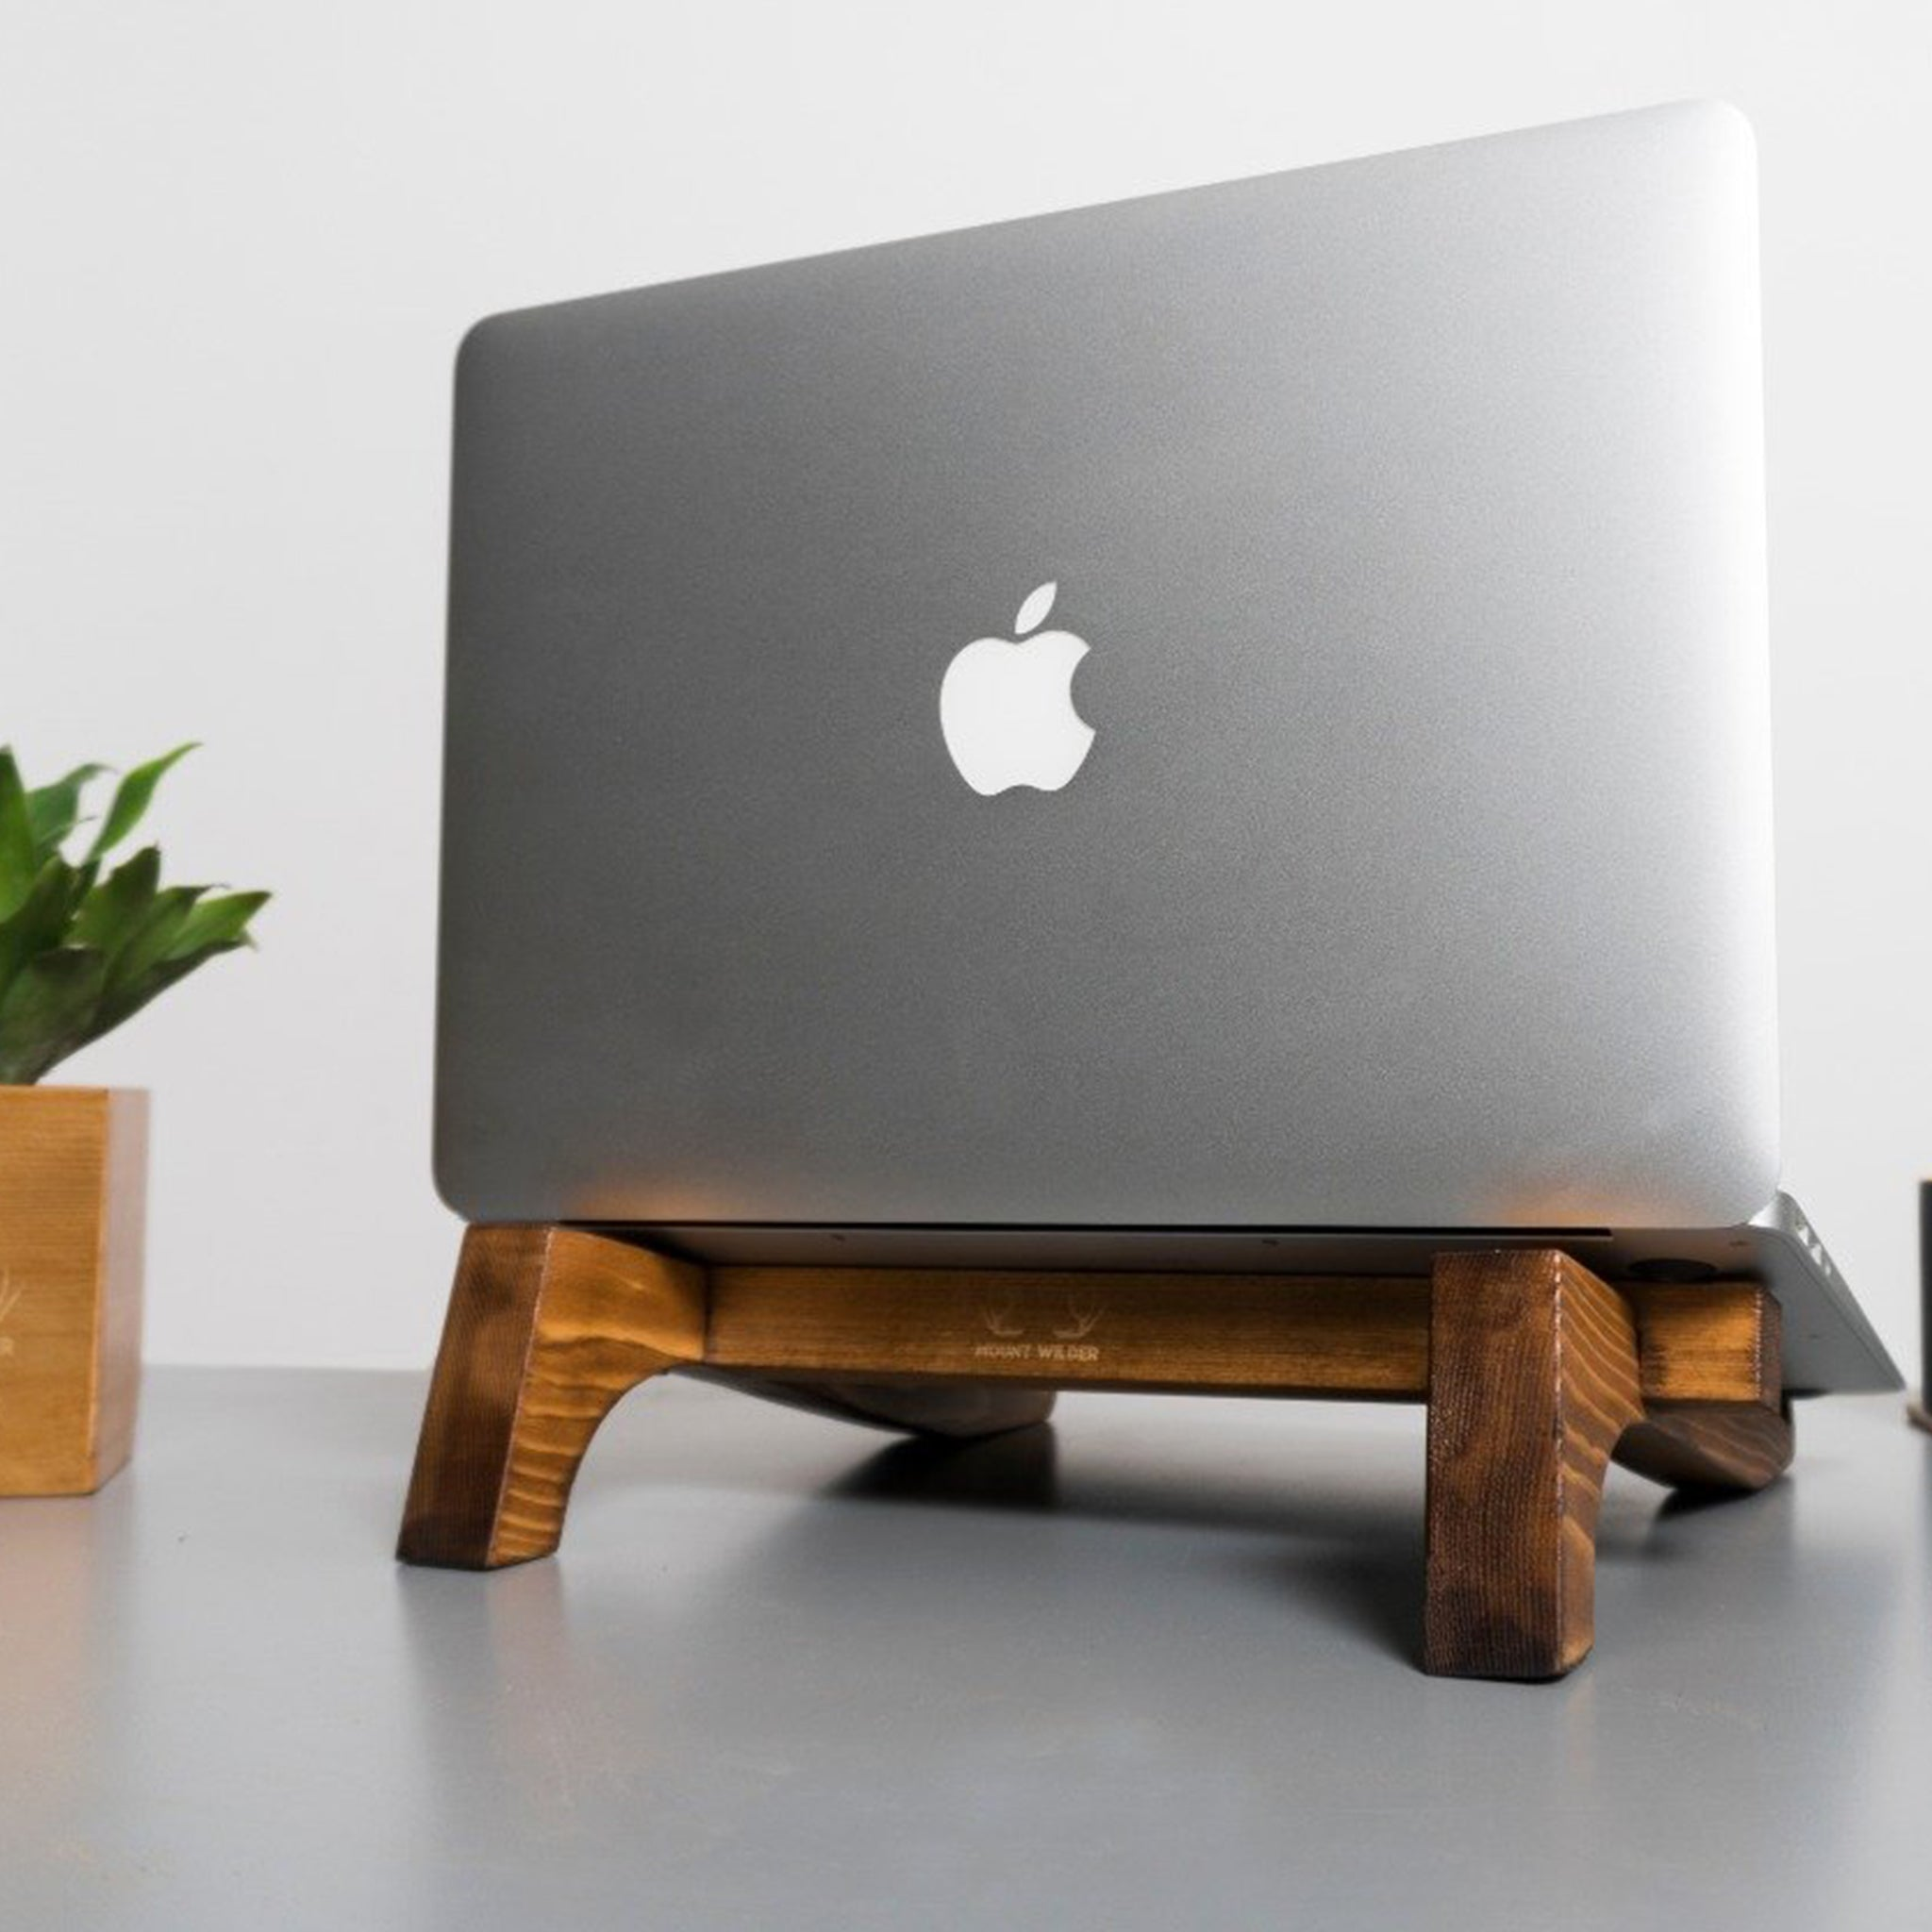 Desk Setup in Pine Wood